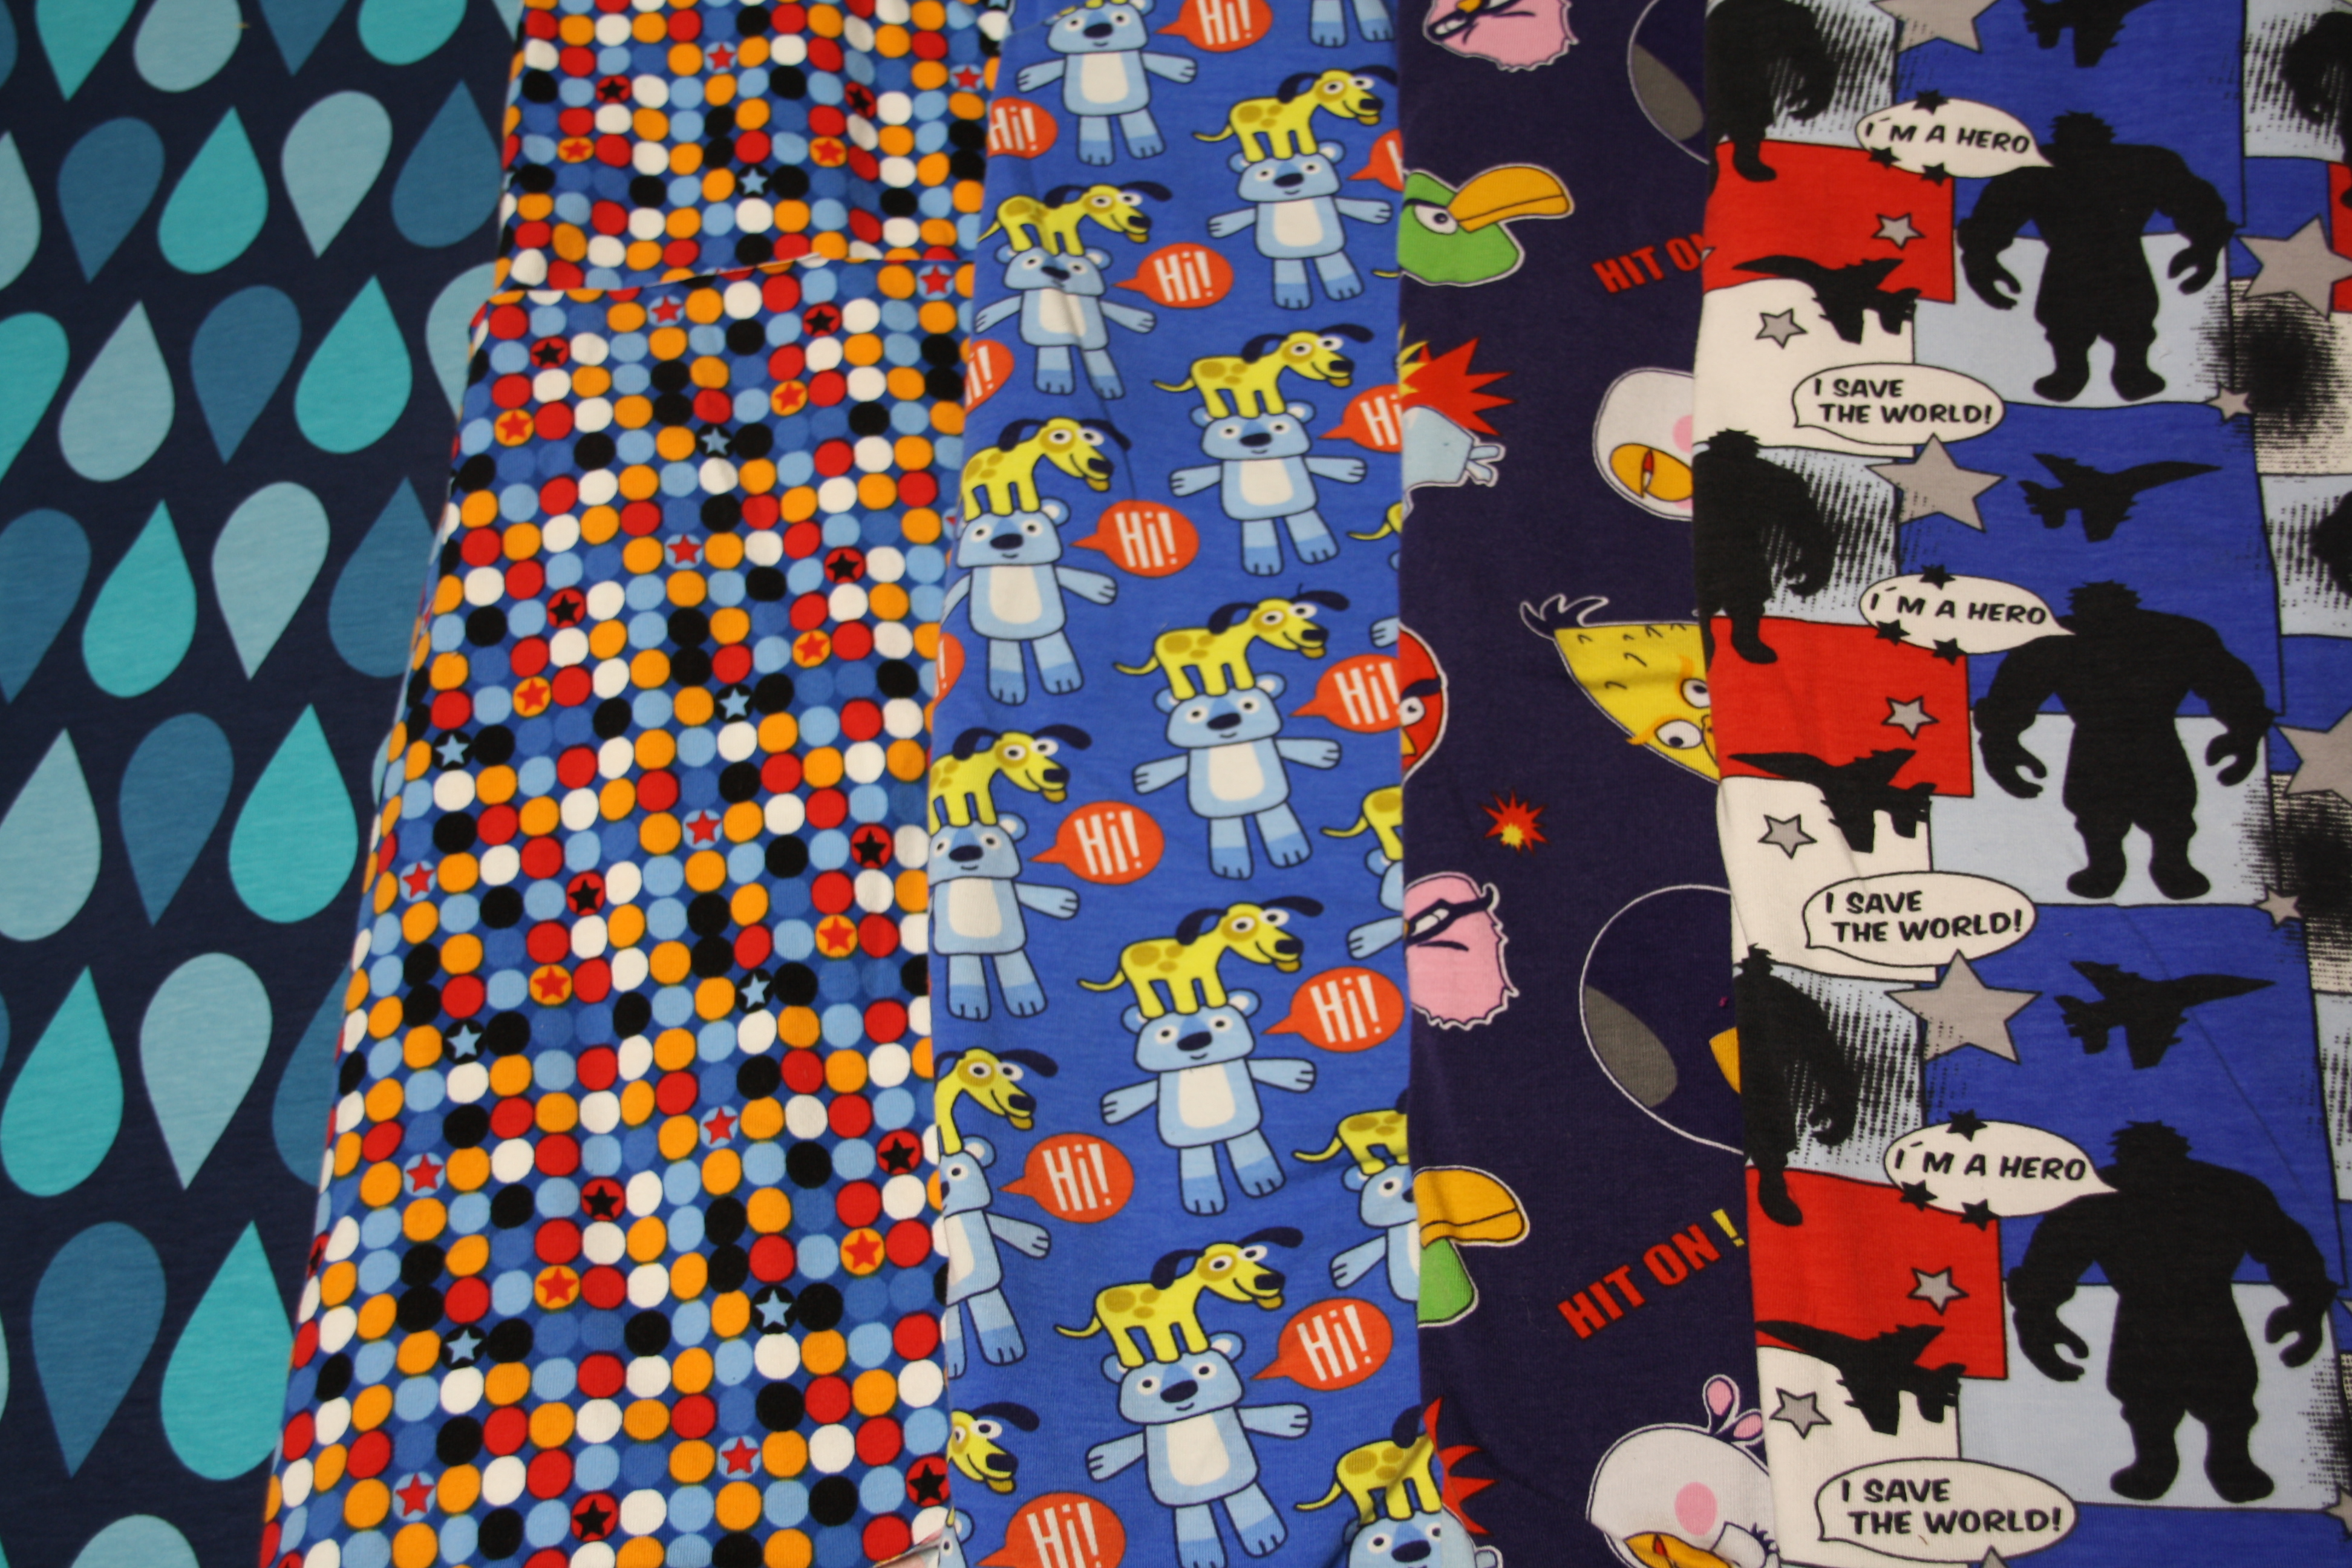 Lonley Drops Laitnerin Bunte Dots coole Hunde Angry Birds Comic Szene Stoffauswahl Jungsstoffe